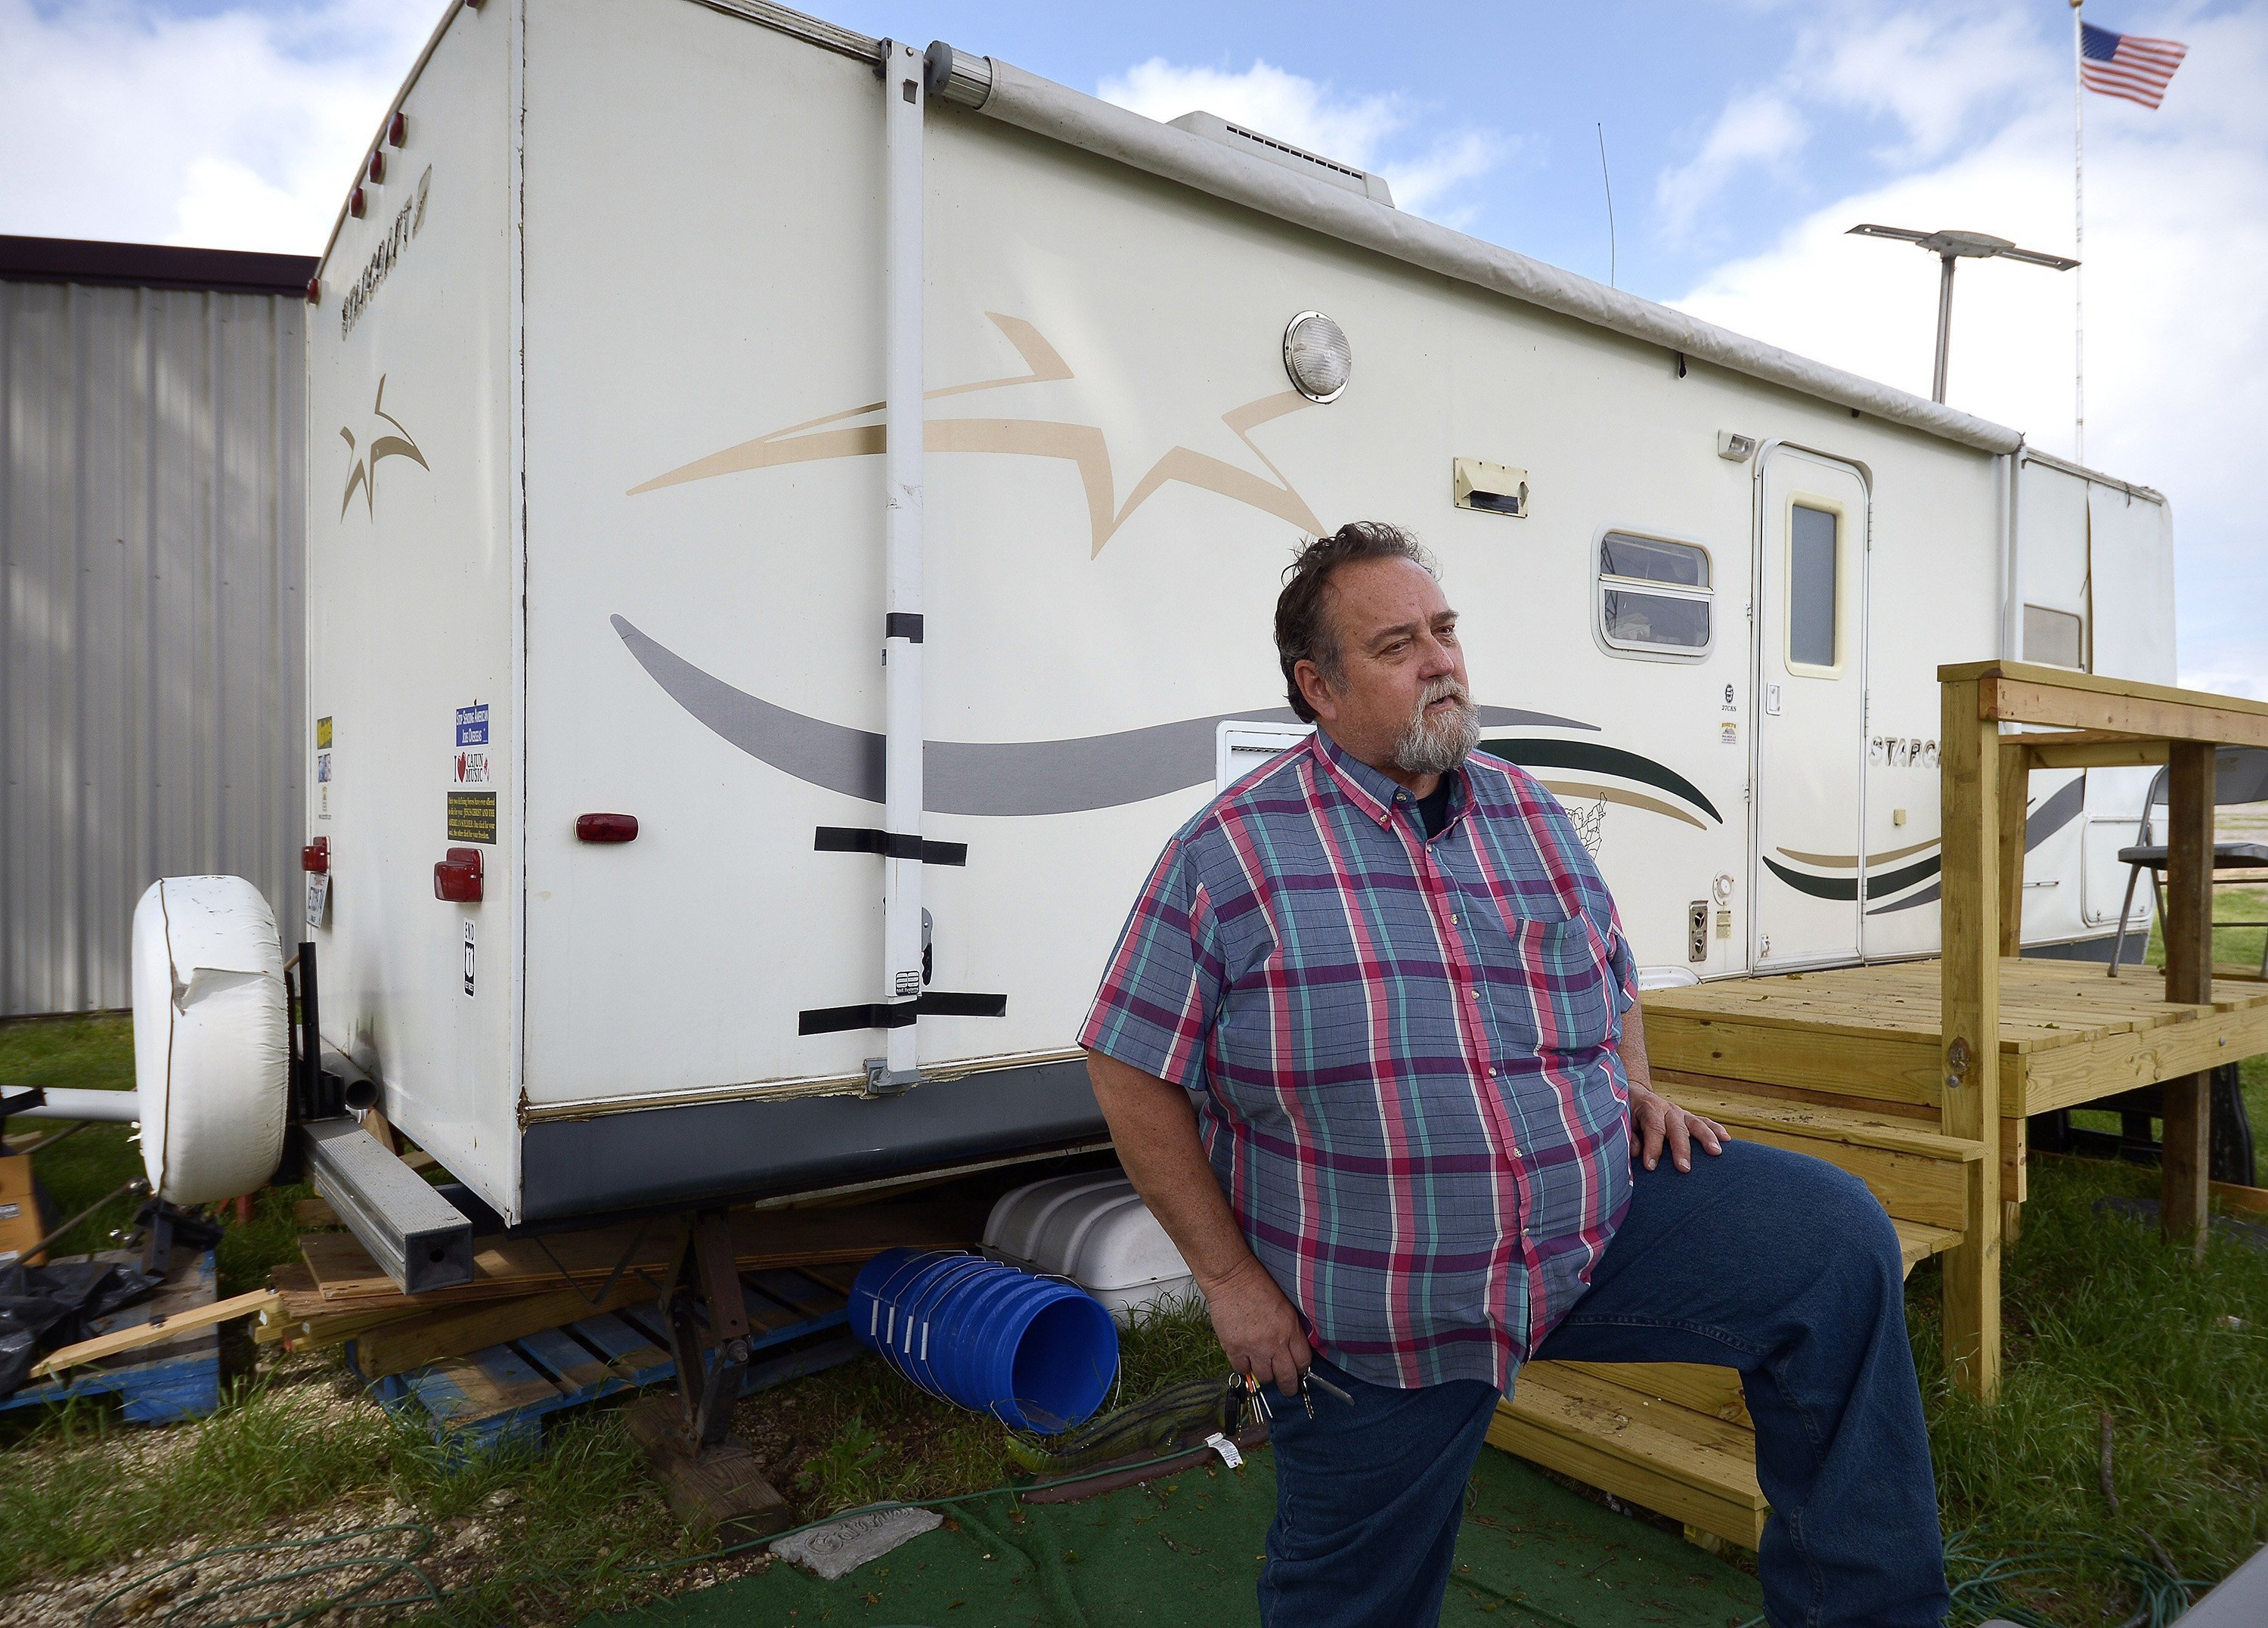 John Raimer stands in front of his trailer that he lives in as he leads at the West Long Term Recovery team in West, Texas, on April 1, 2014.